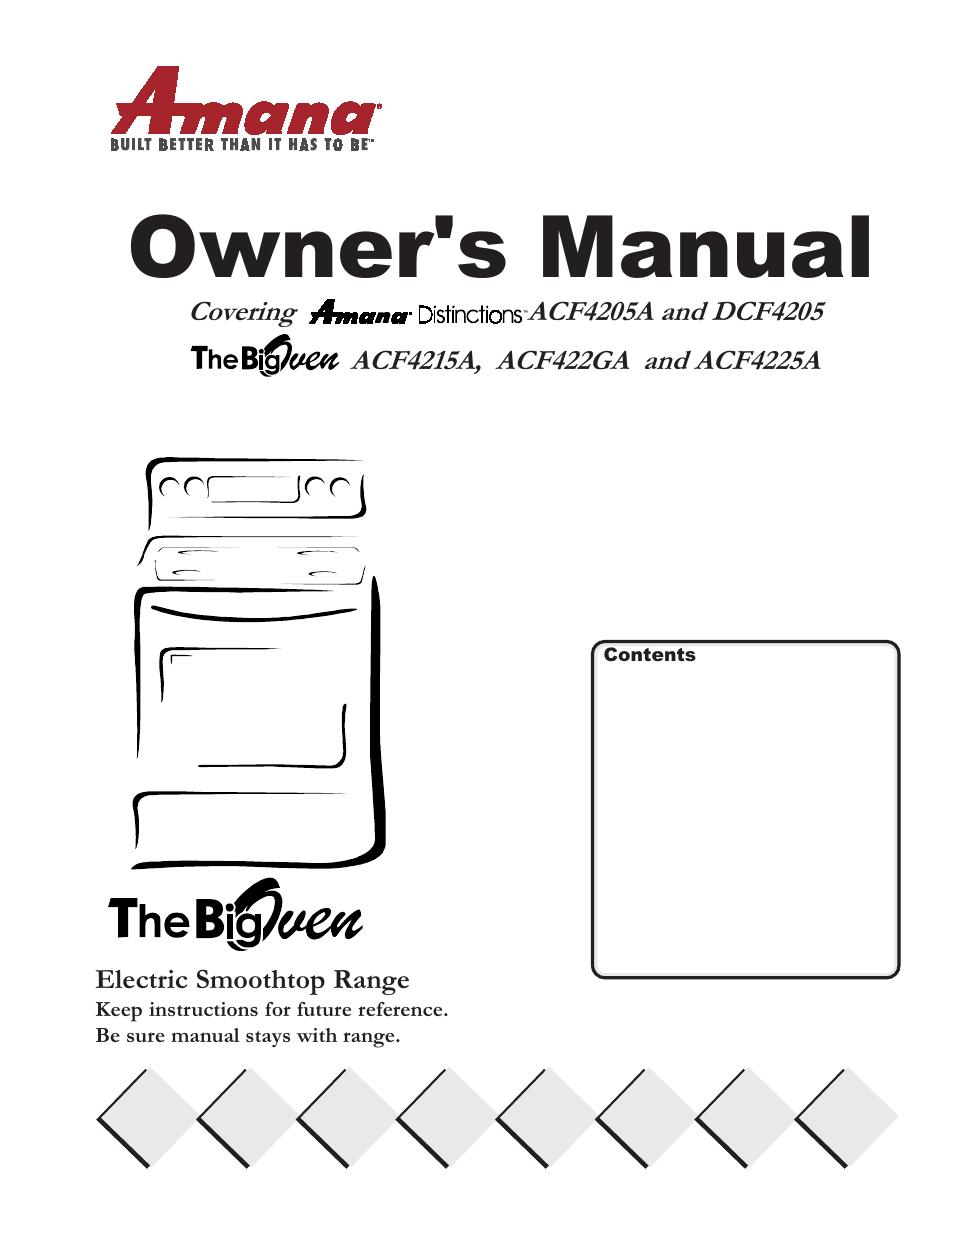 amana bigoven acf4205a user manual 32 pages also for bigoven rh manualsdir com Amana Appliance Logo Amana Appliance Dealers